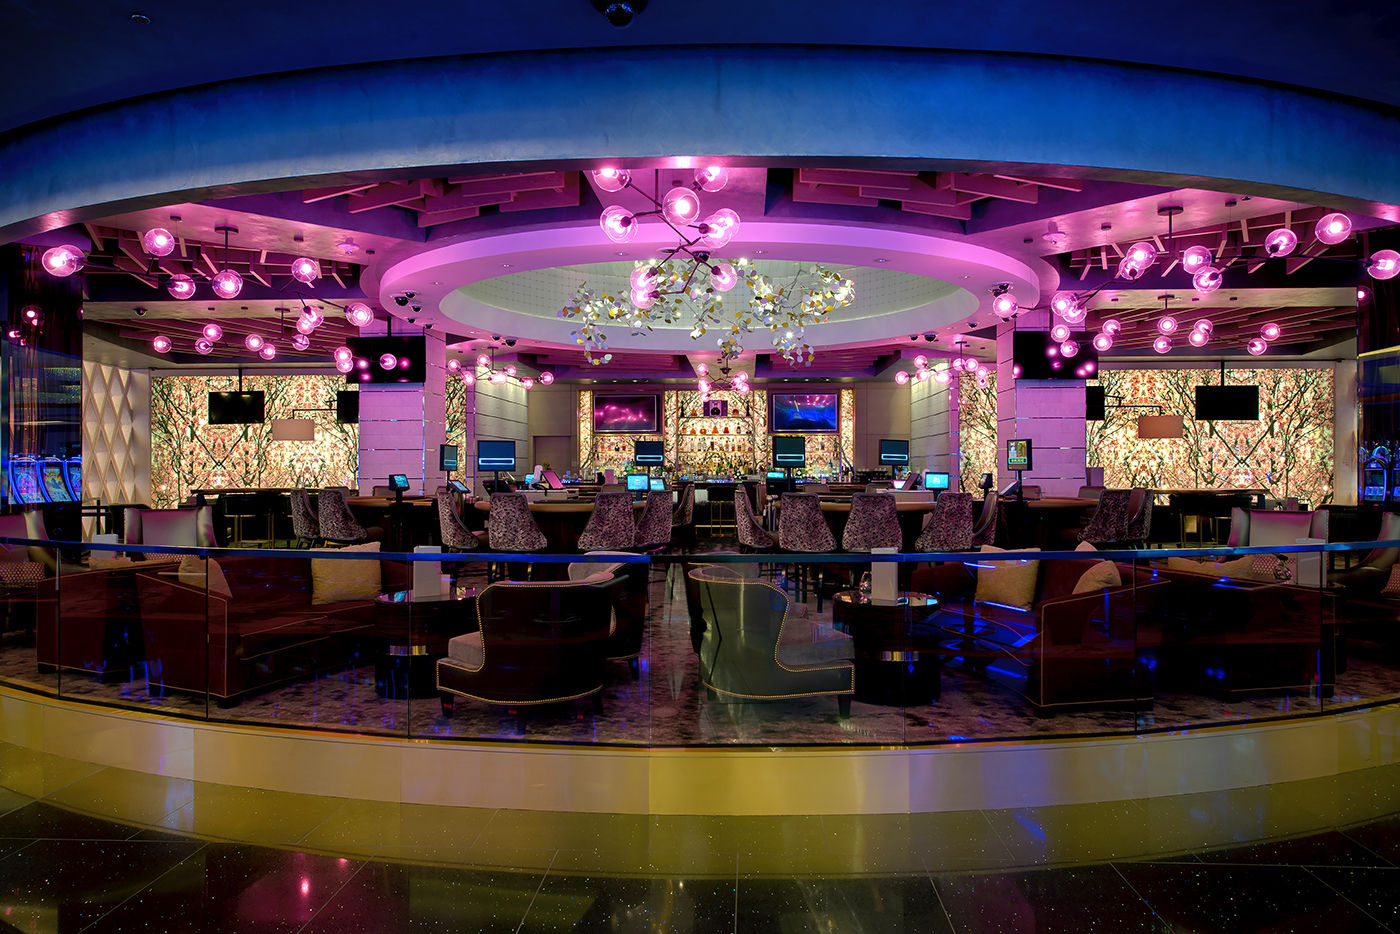 The Blossom cocktail lounge is one of the many places to grab at drink at MGM National Harbor. (Courtesy MGM National Harbor)